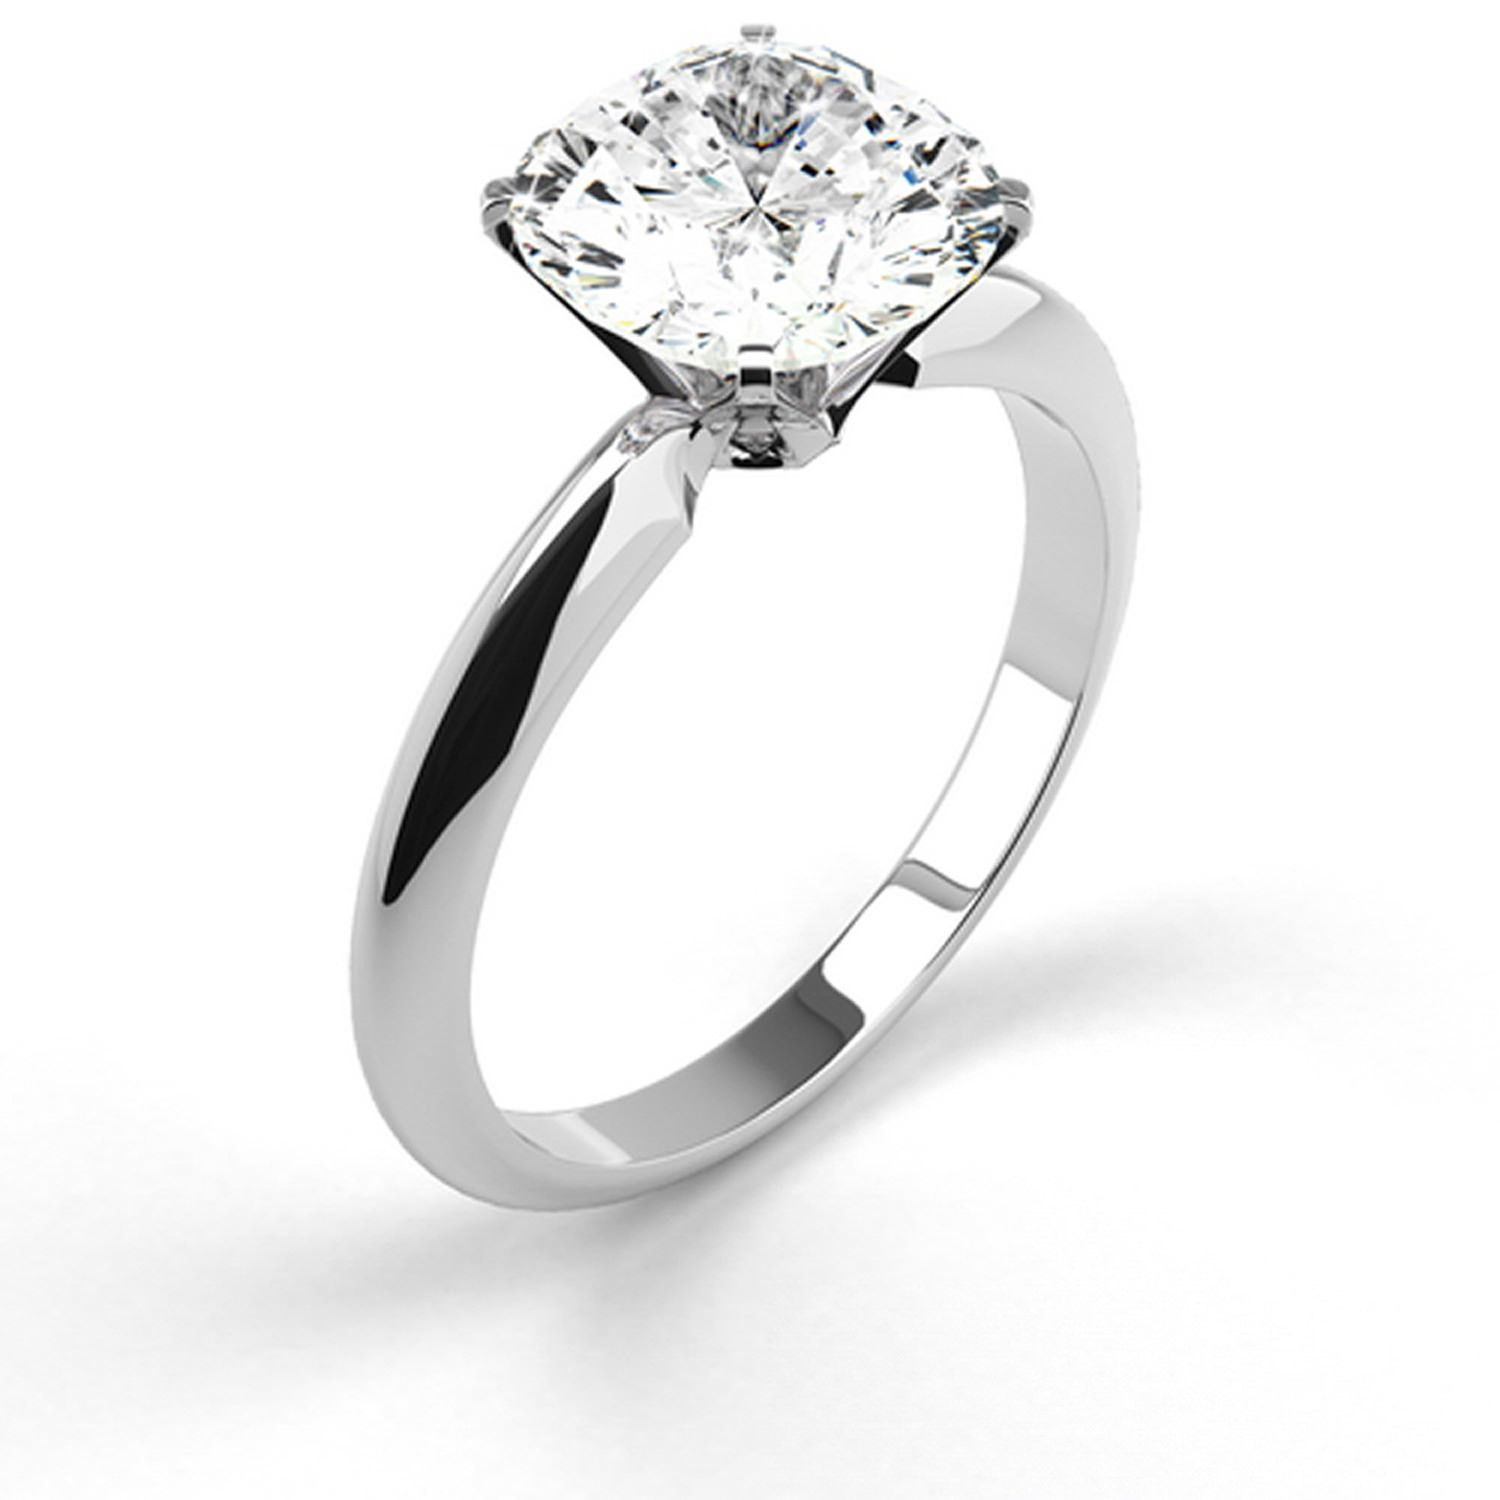 jewellery settings what bombe you need to engagement halo ring know about uneek blog